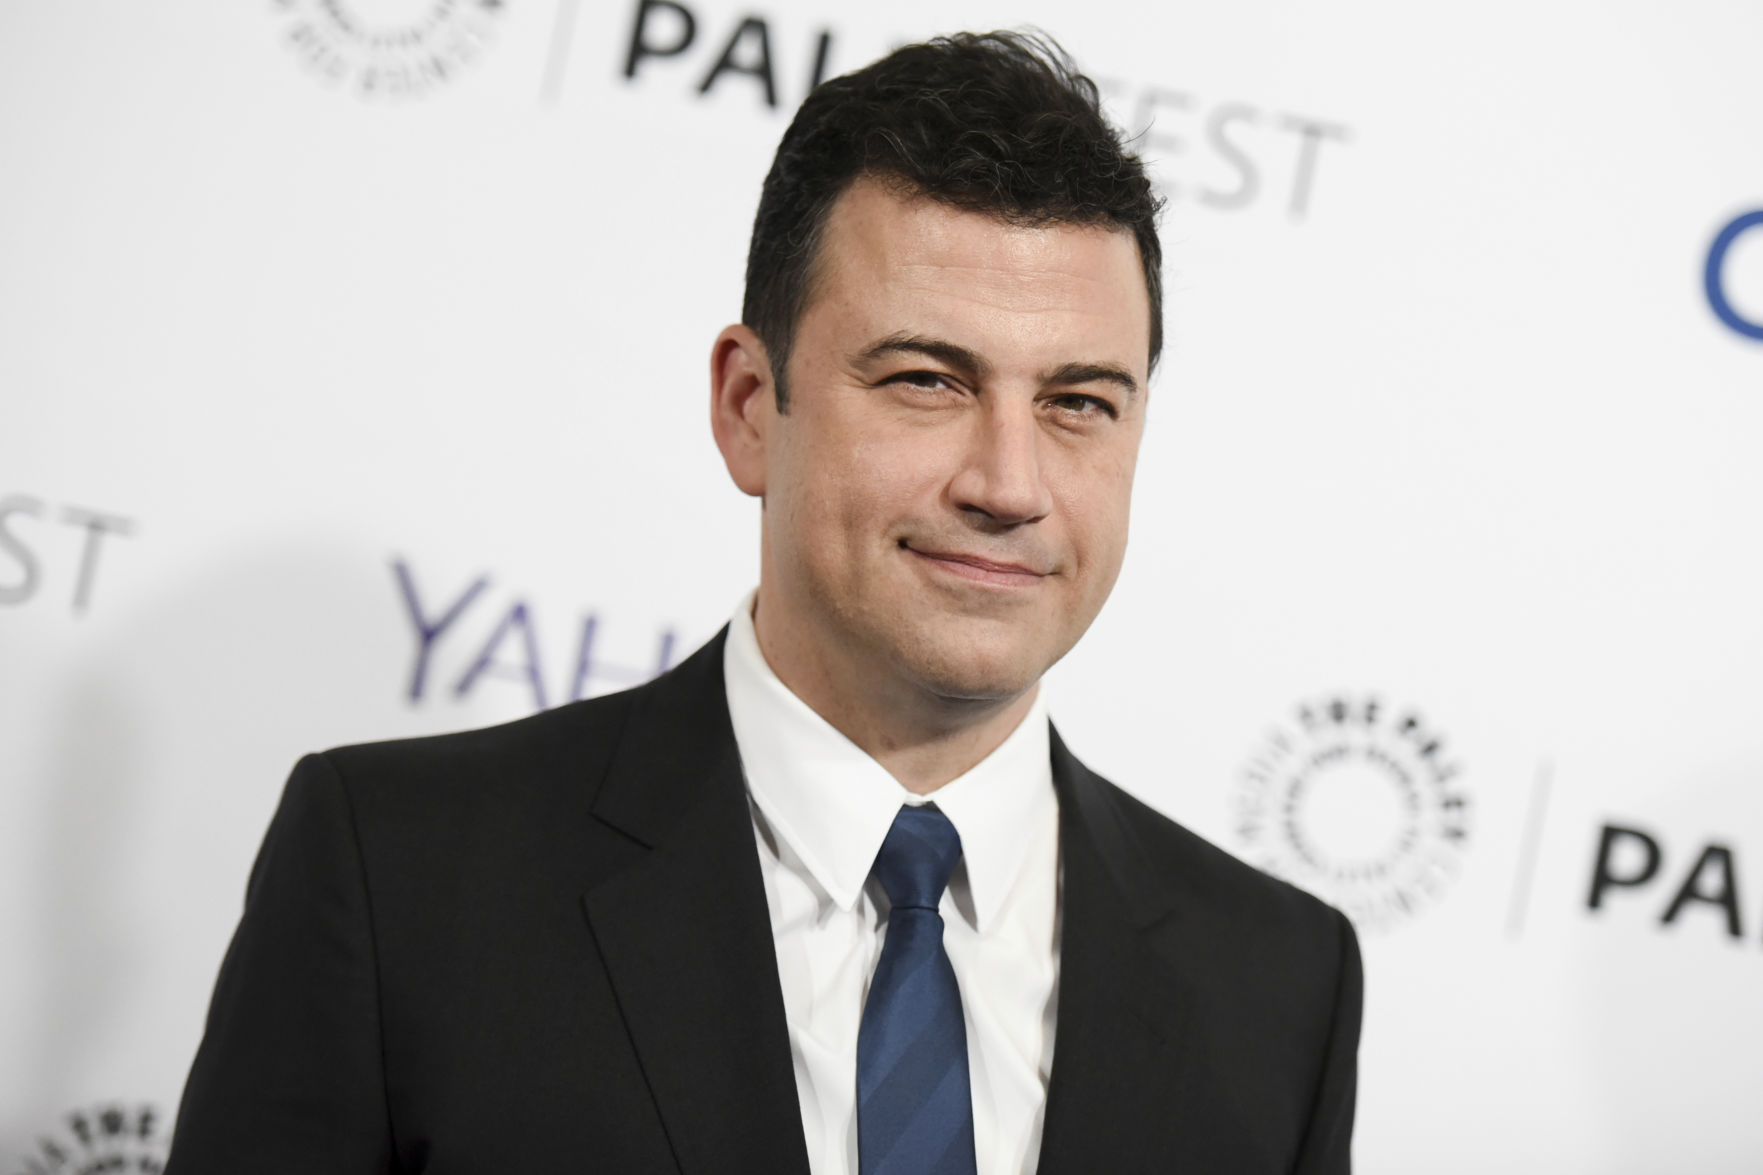 Don't fall for Jimmy Kimmel's cheap zero-sum emotionalism